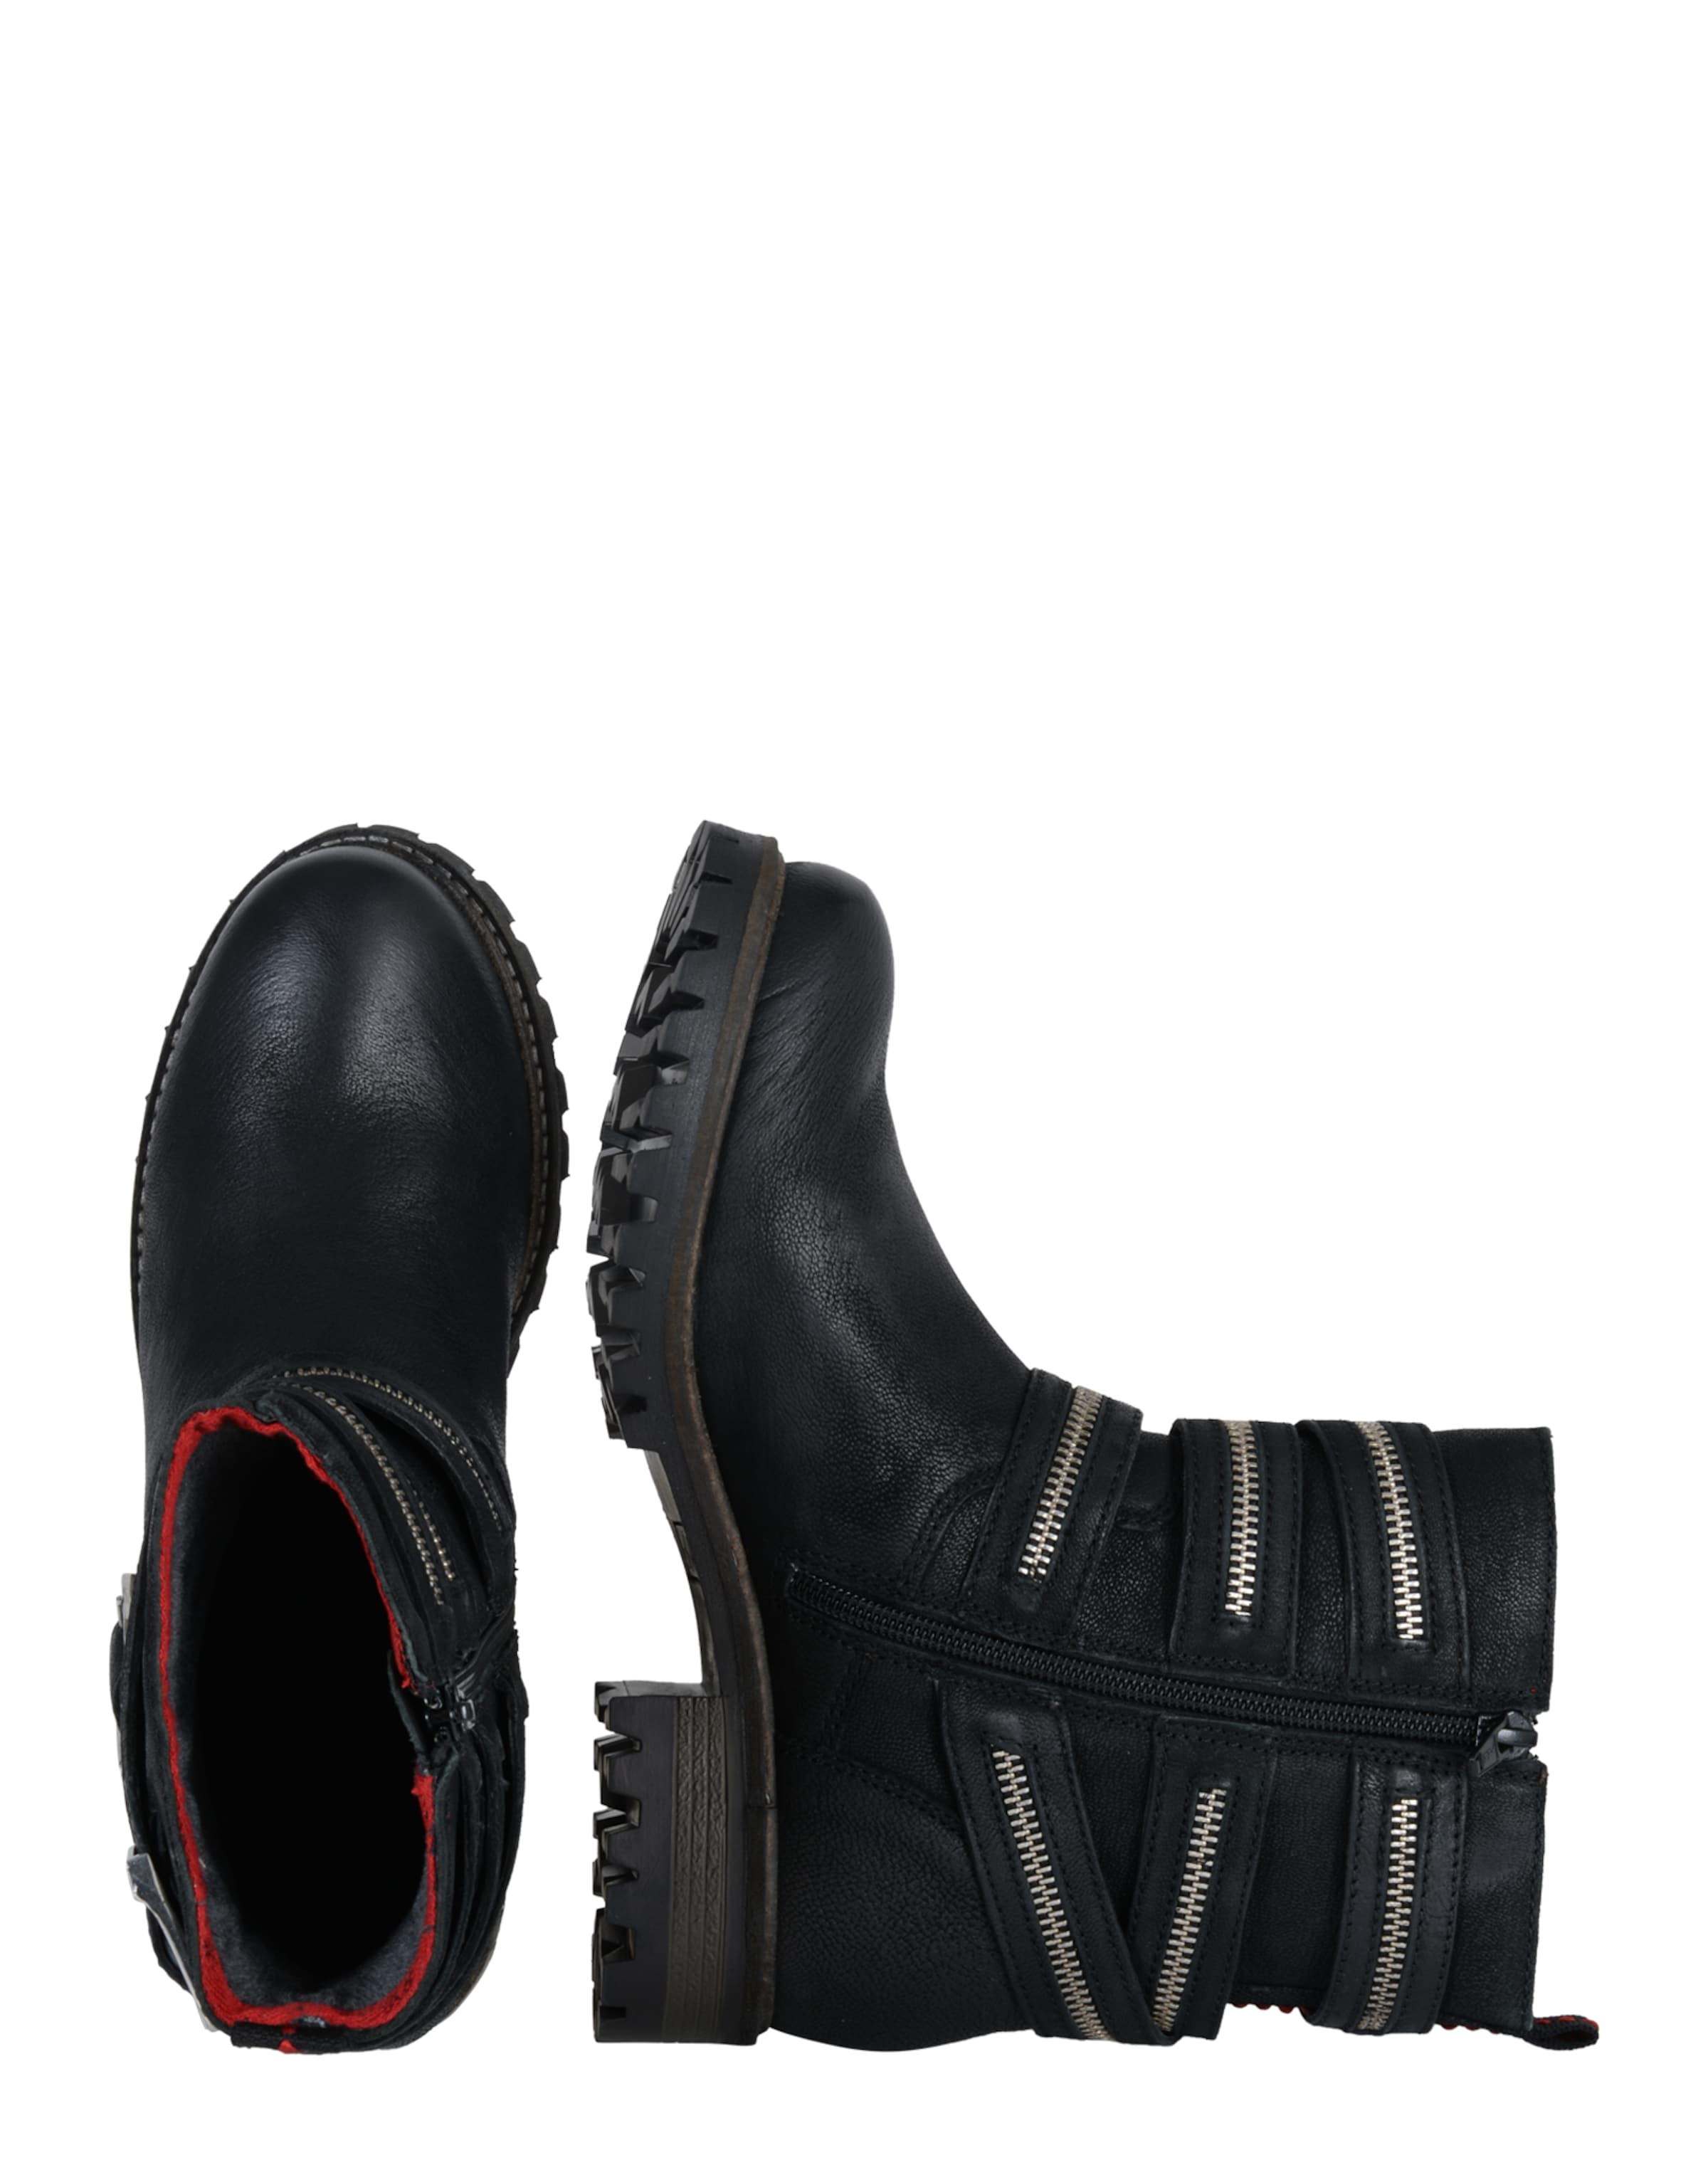 Boots mit Oliver s Schnalle RED LABEL s Oliver q6wfX4